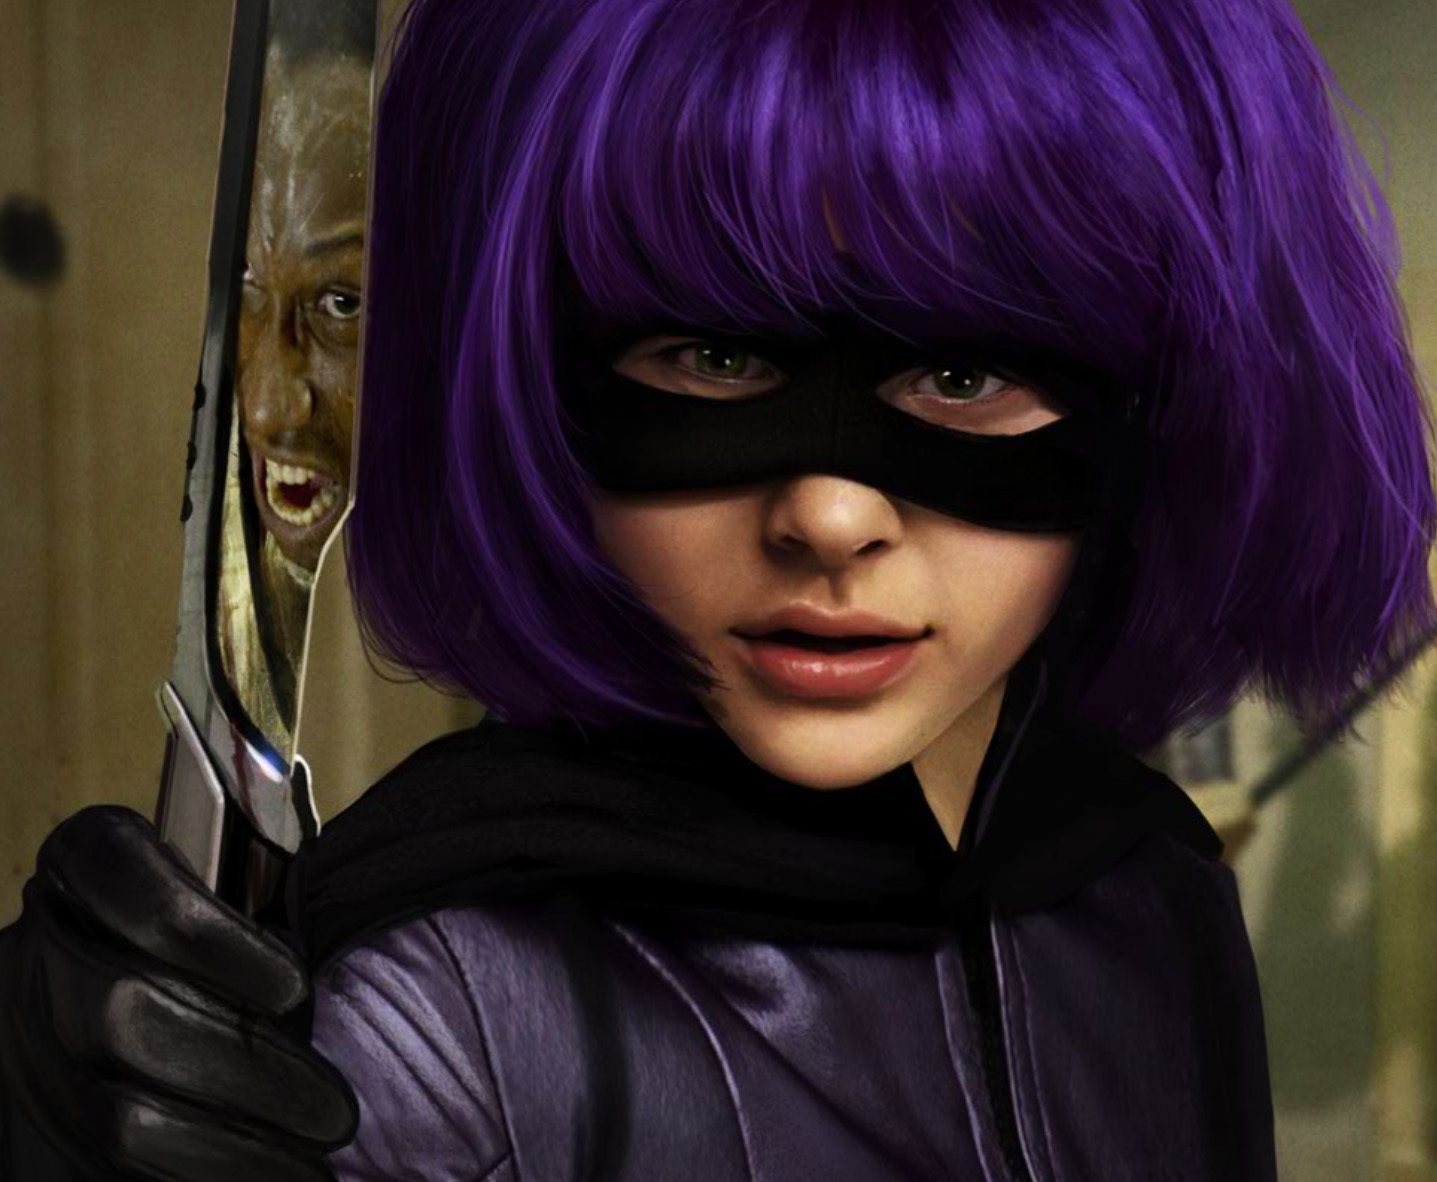 Firmly convinced, Hit girl kick ass